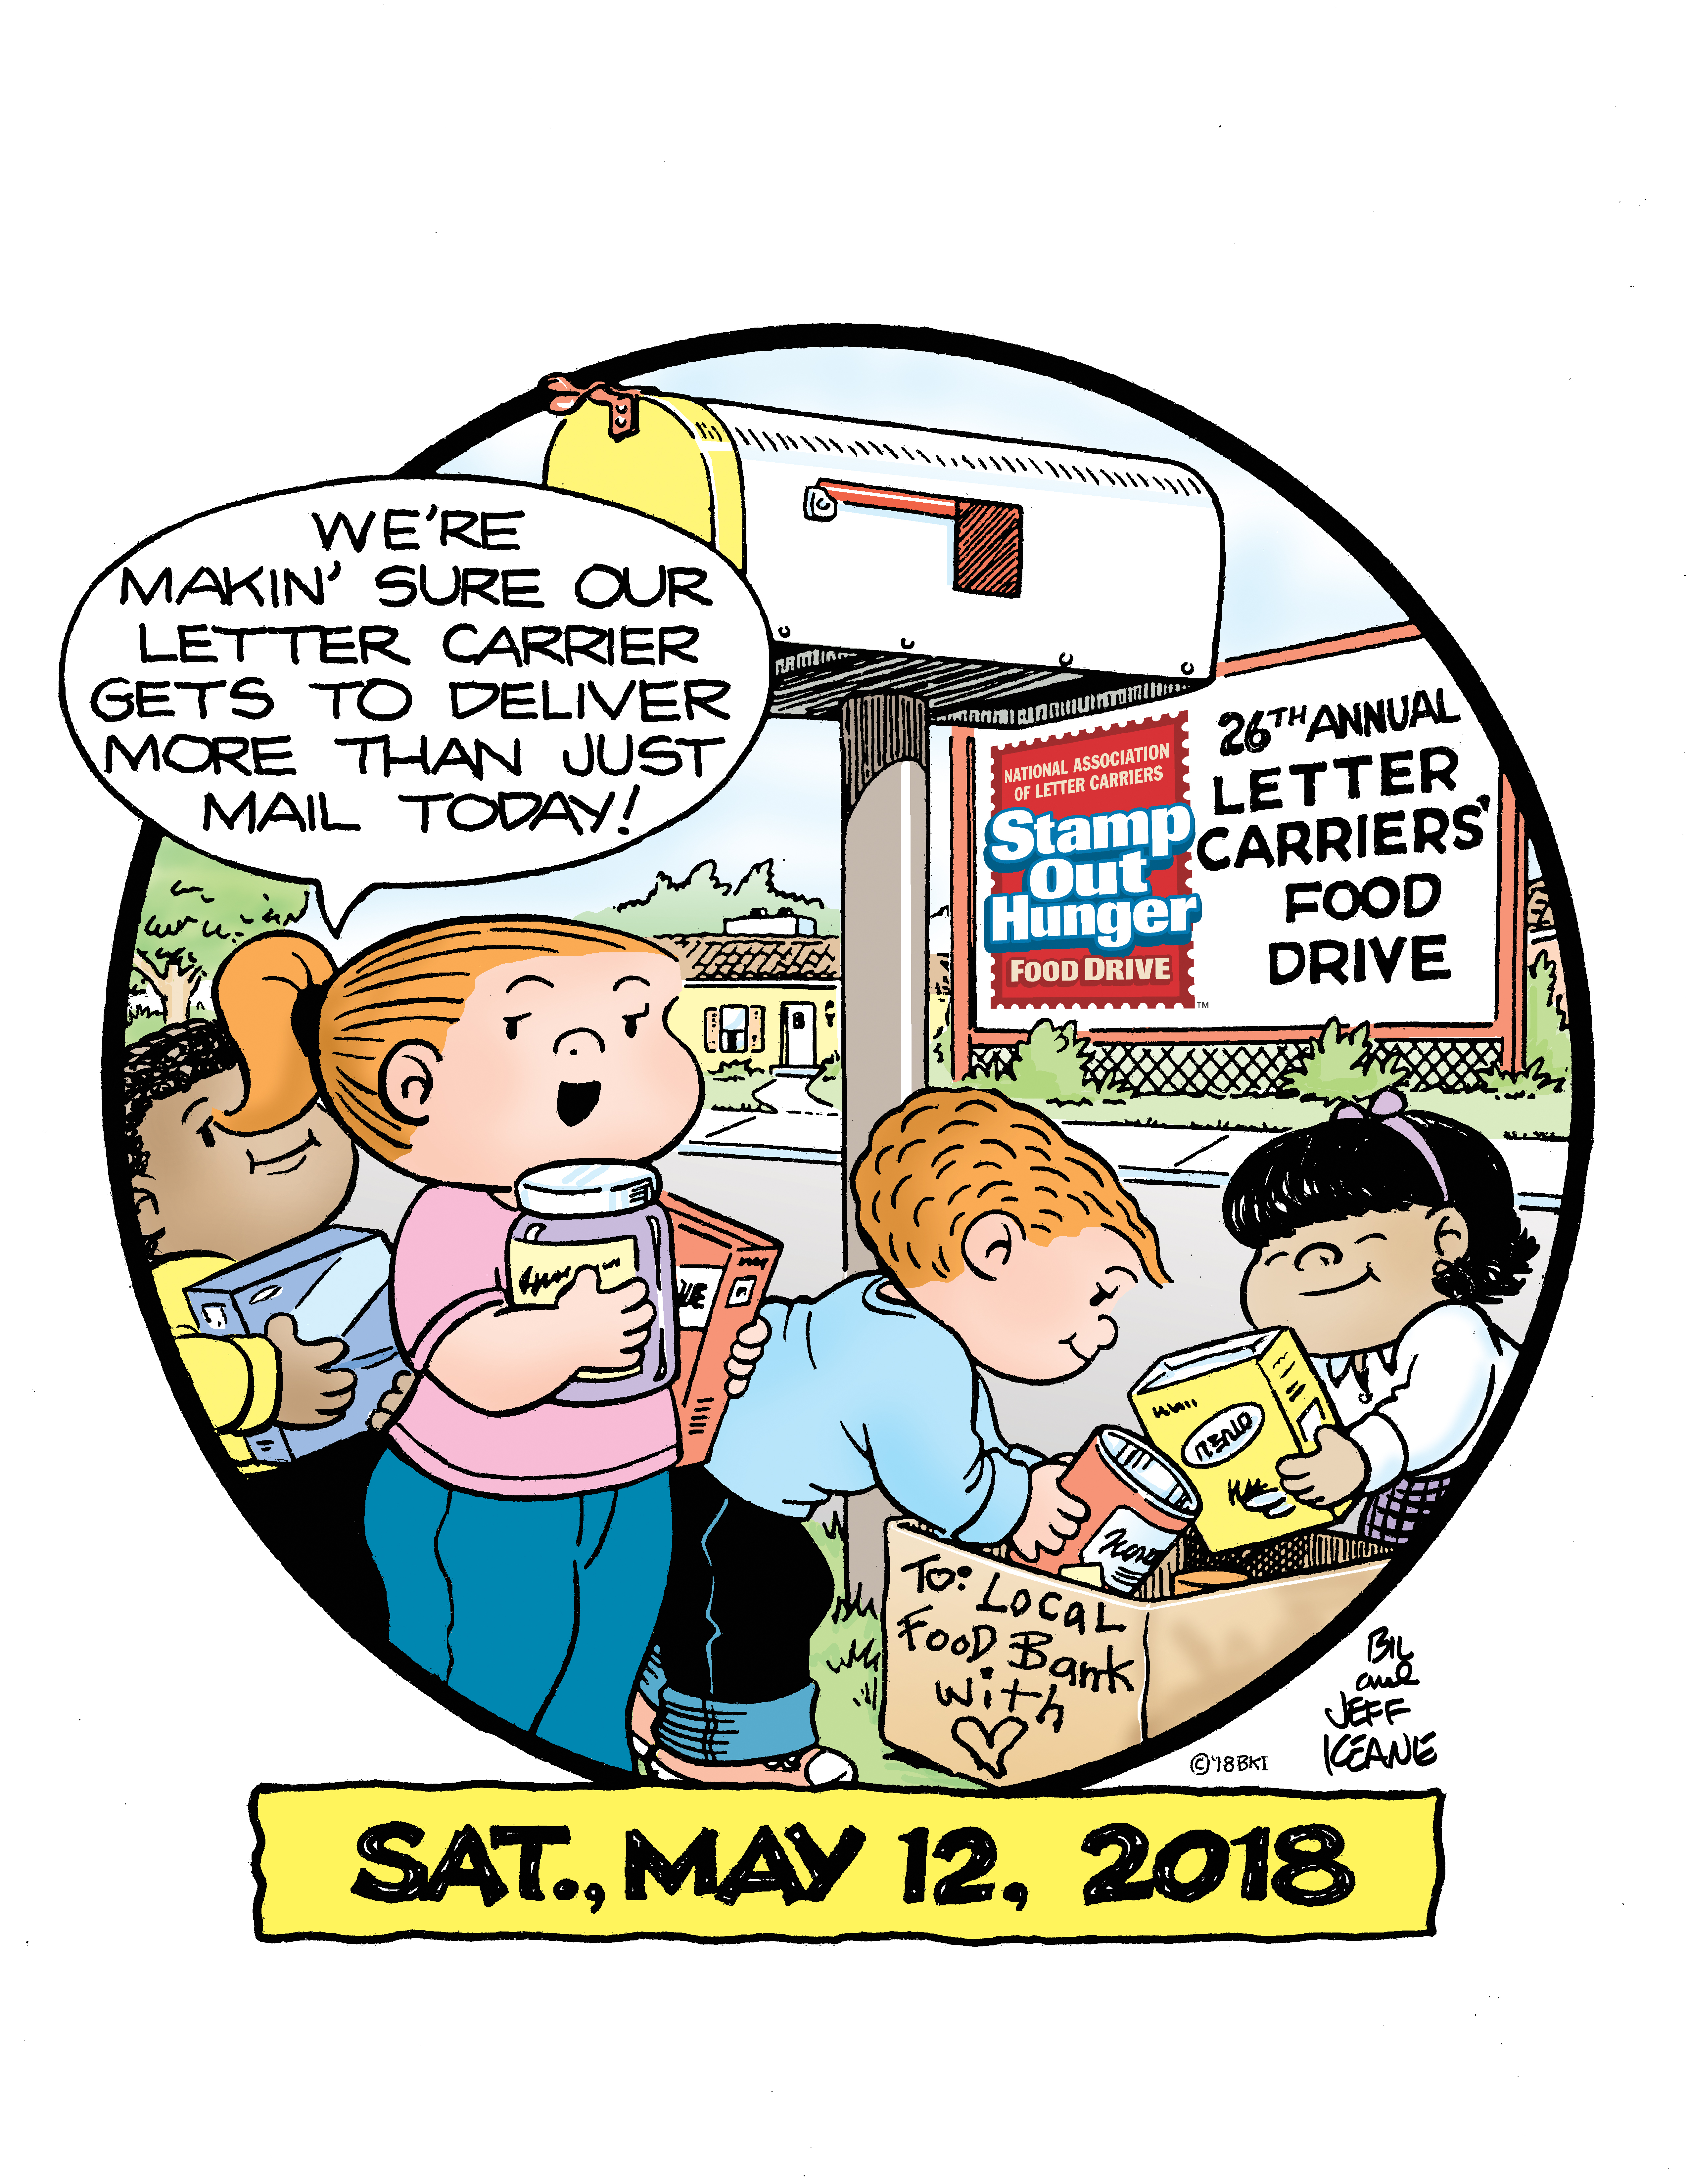 Food Drive Mail Carrier